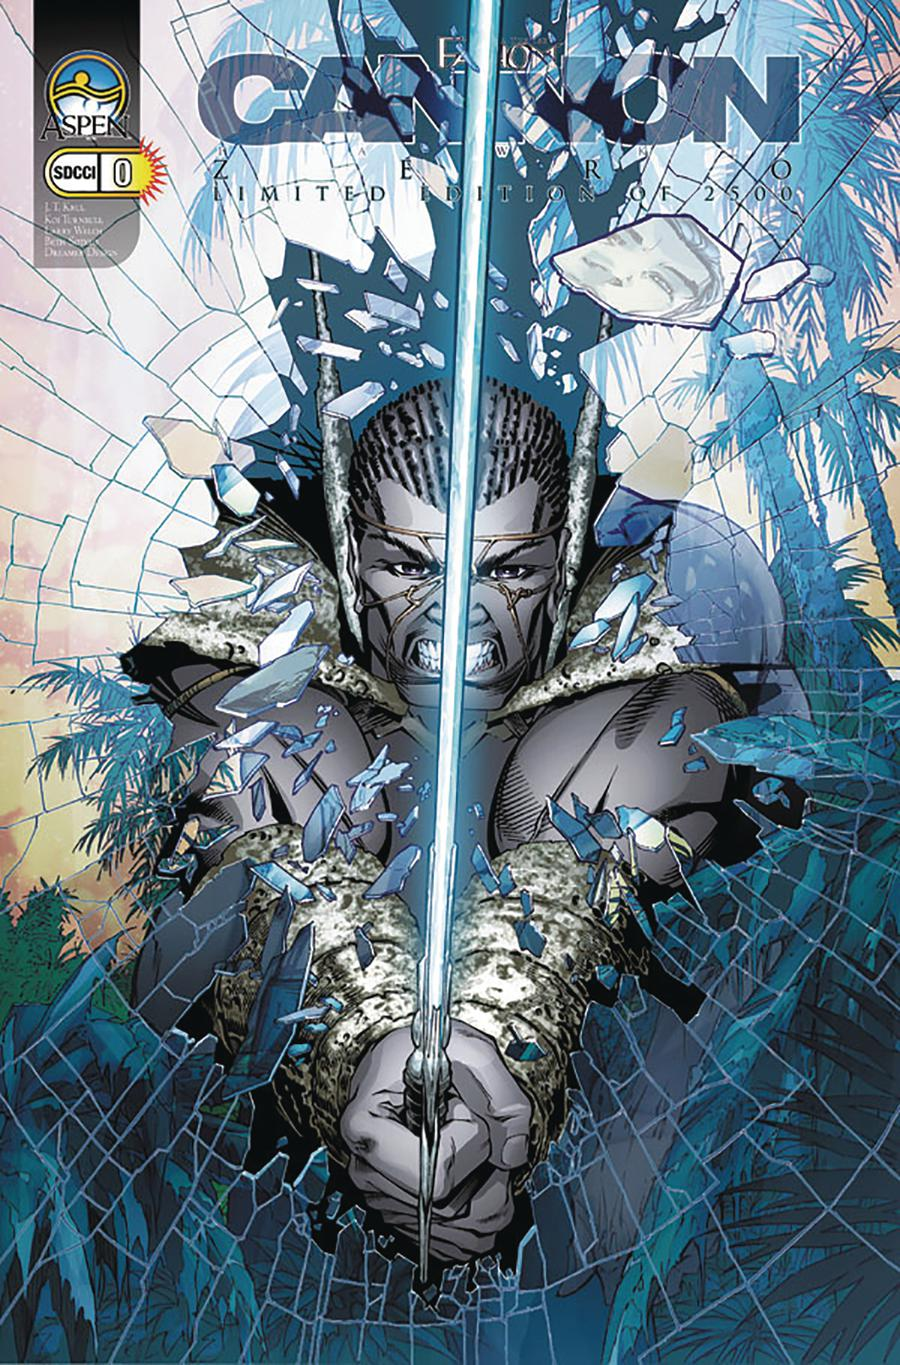 Fathom Cannon Hawke #0 Cover D SDCC 2005 Exclusive Limited Edition Koi Turnbull Variant Cover